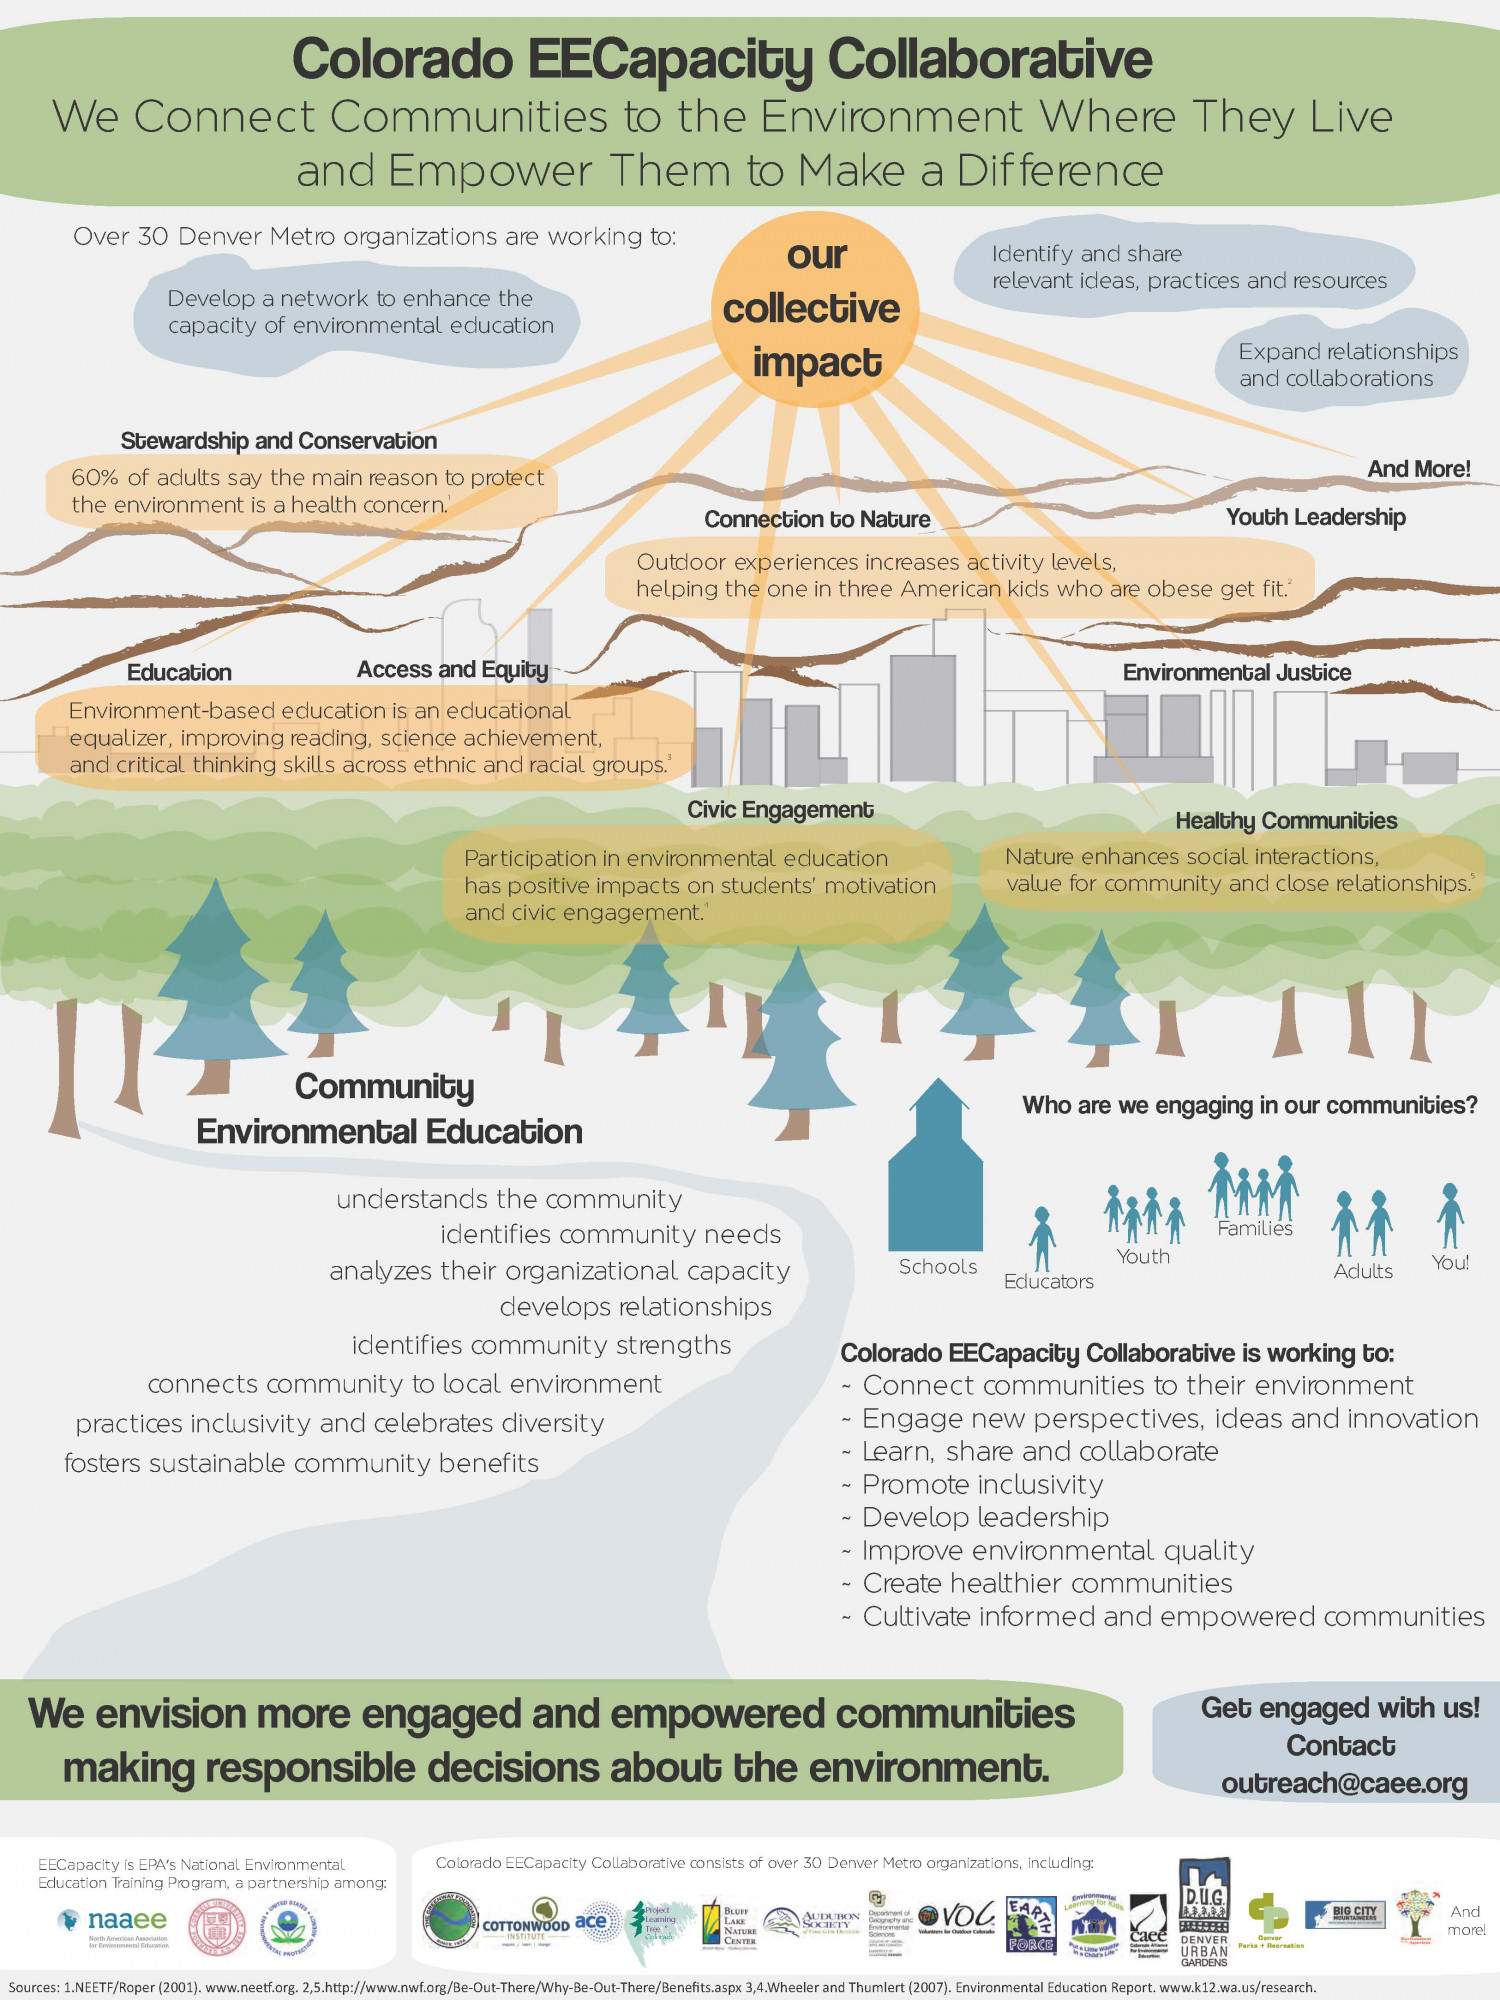 Colorado EE Capacity Collaborative Infographic